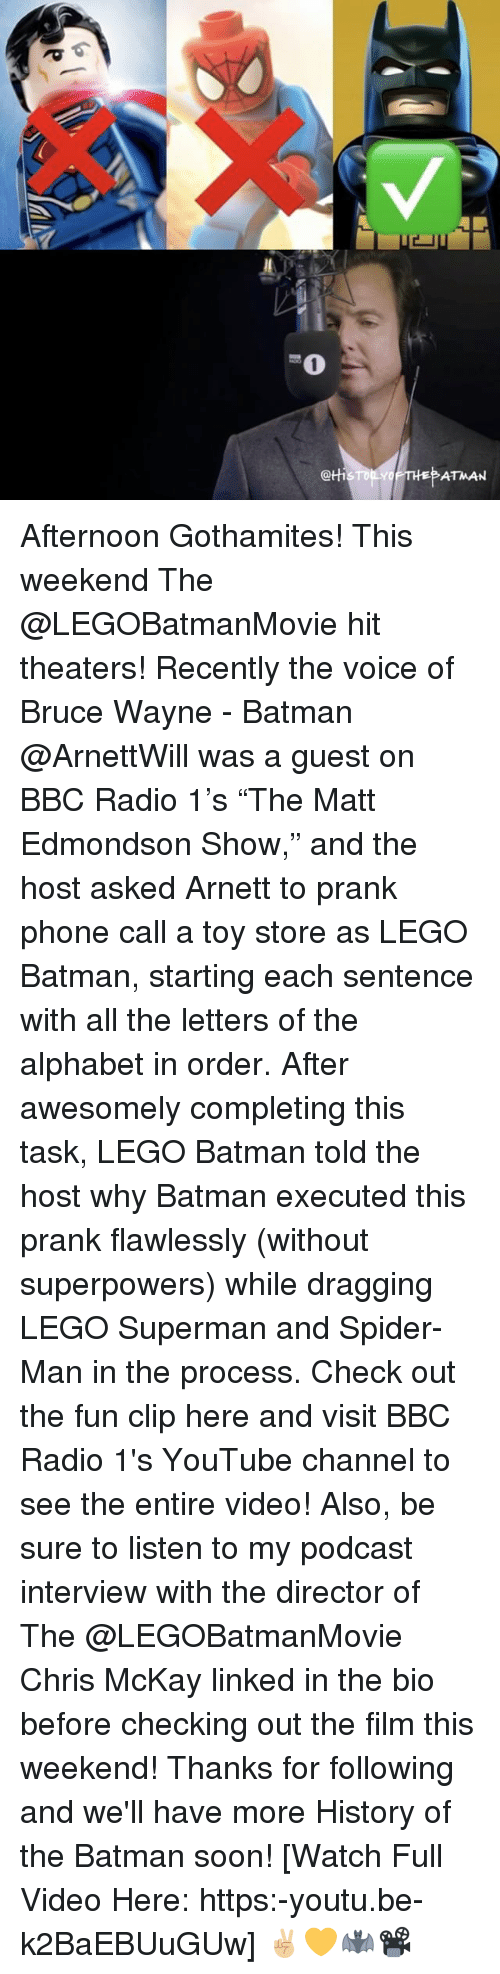 """Wayned: @tti  ATMAN Afternoon Gothamites! This weekend The @LEGOBatmanMovie hit theaters! Recently the voice of Bruce Wayne - Batman @ArnettWill was a guest on BBC Radio 1's """"The Matt Edmondson Show,"""" and the host asked Arnett to prank phone call a toy store as LEGO Batman, starting each sentence with all the letters of the alphabet in order. After awesomely completing this task, LEGO Batman told the host why Batman executed this prank flawlessly (without superpowers) while dragging LEGO Superman and Spider-Man in the process. Check out the fun clip here and visit BBC Radio 1's YouTube channel to see the entire video! Also, be sure to listen to my podcast interview with the director of The @LEGOBatmanMovie Chris McKay linked in the bio before checking out the film this weekend! Thanks for following and we'll have more History of the Batman soon! [Watch Full Video Here: https:-youtu.be-k2BaEBUuGUw] ✌🏼💛🦇📽"""